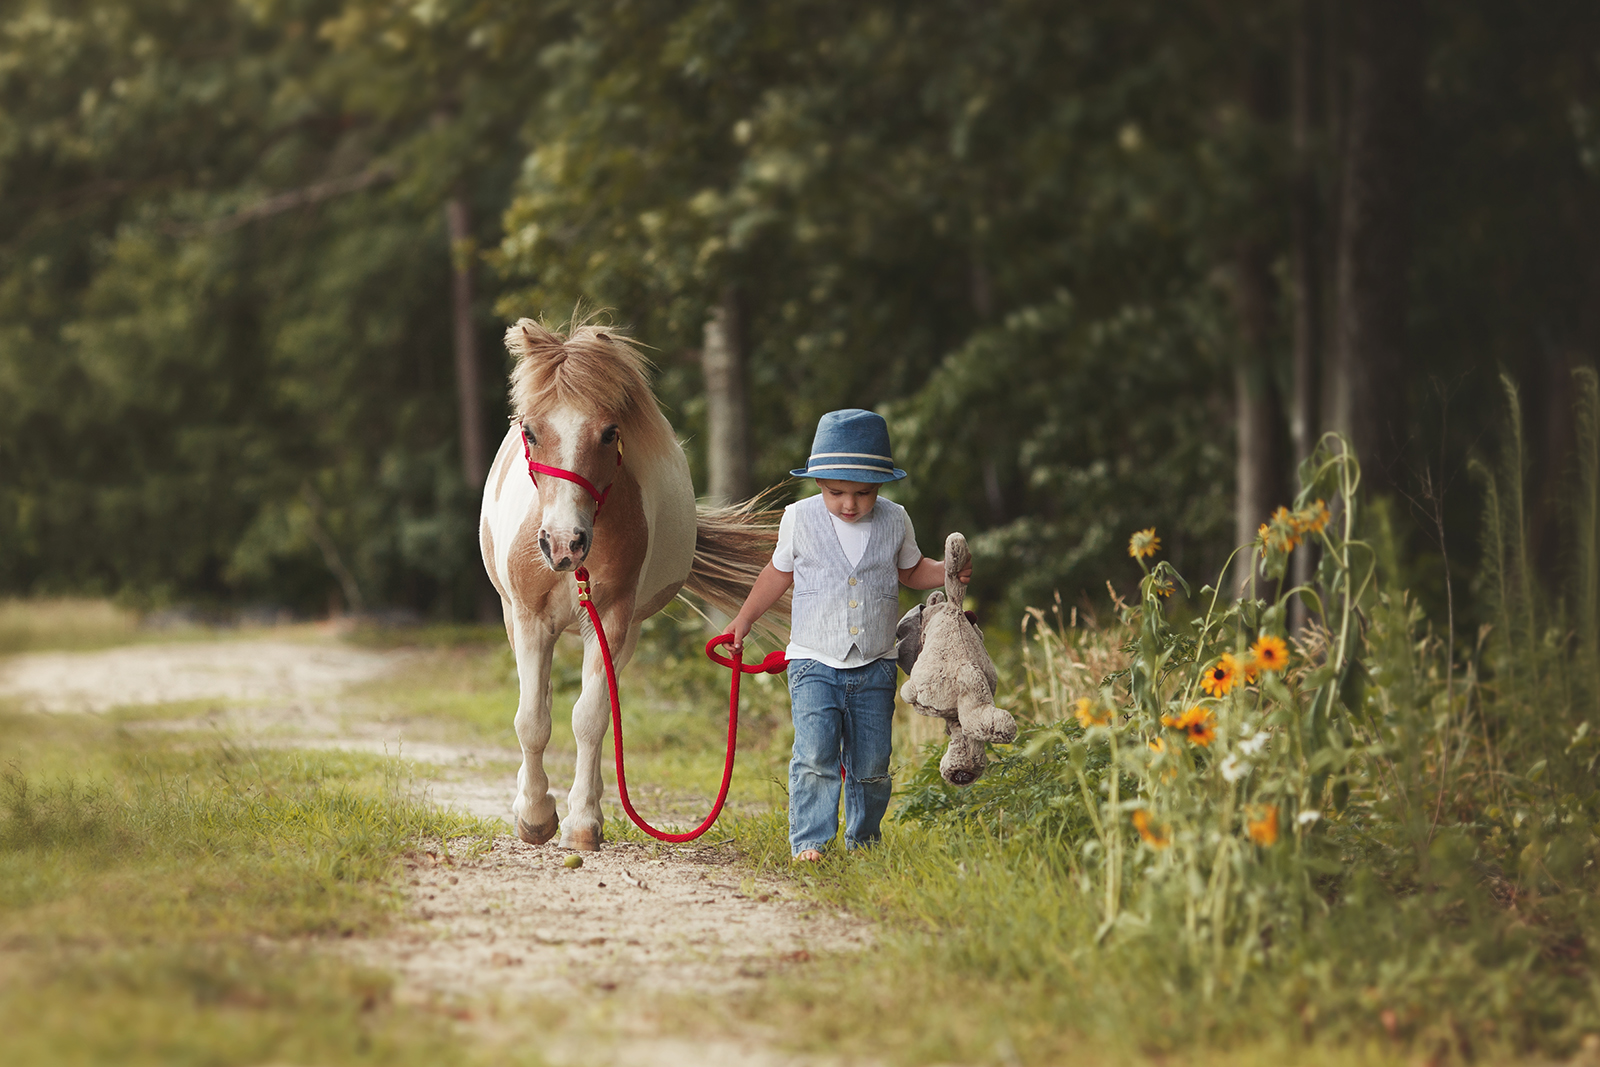 Raleigh child photography with animals